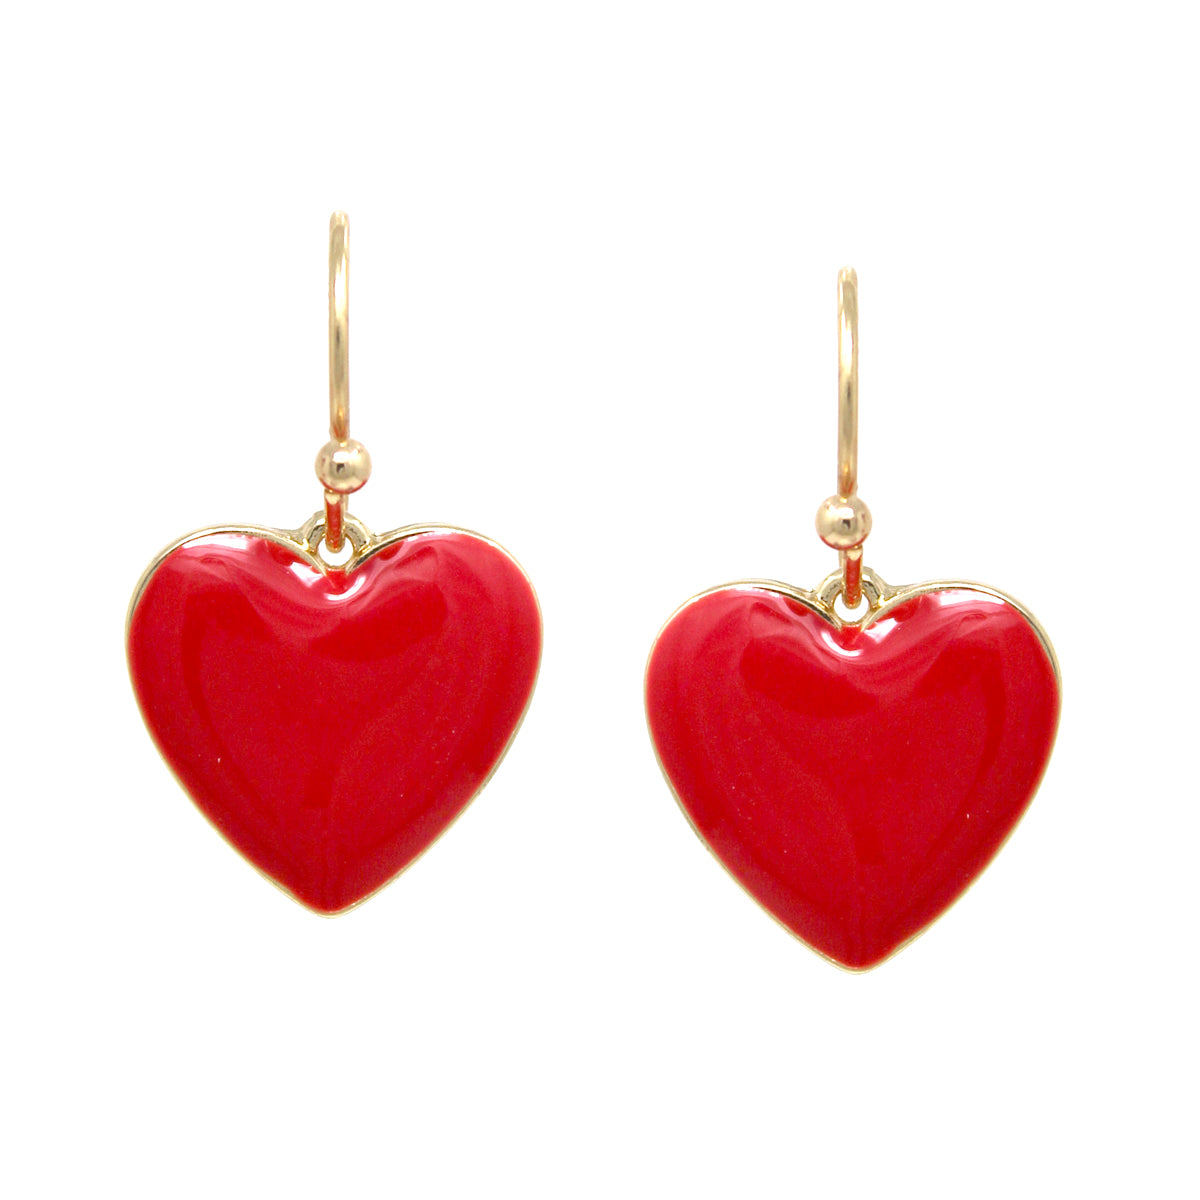 Enamel Glazed Heart Drop Earrings